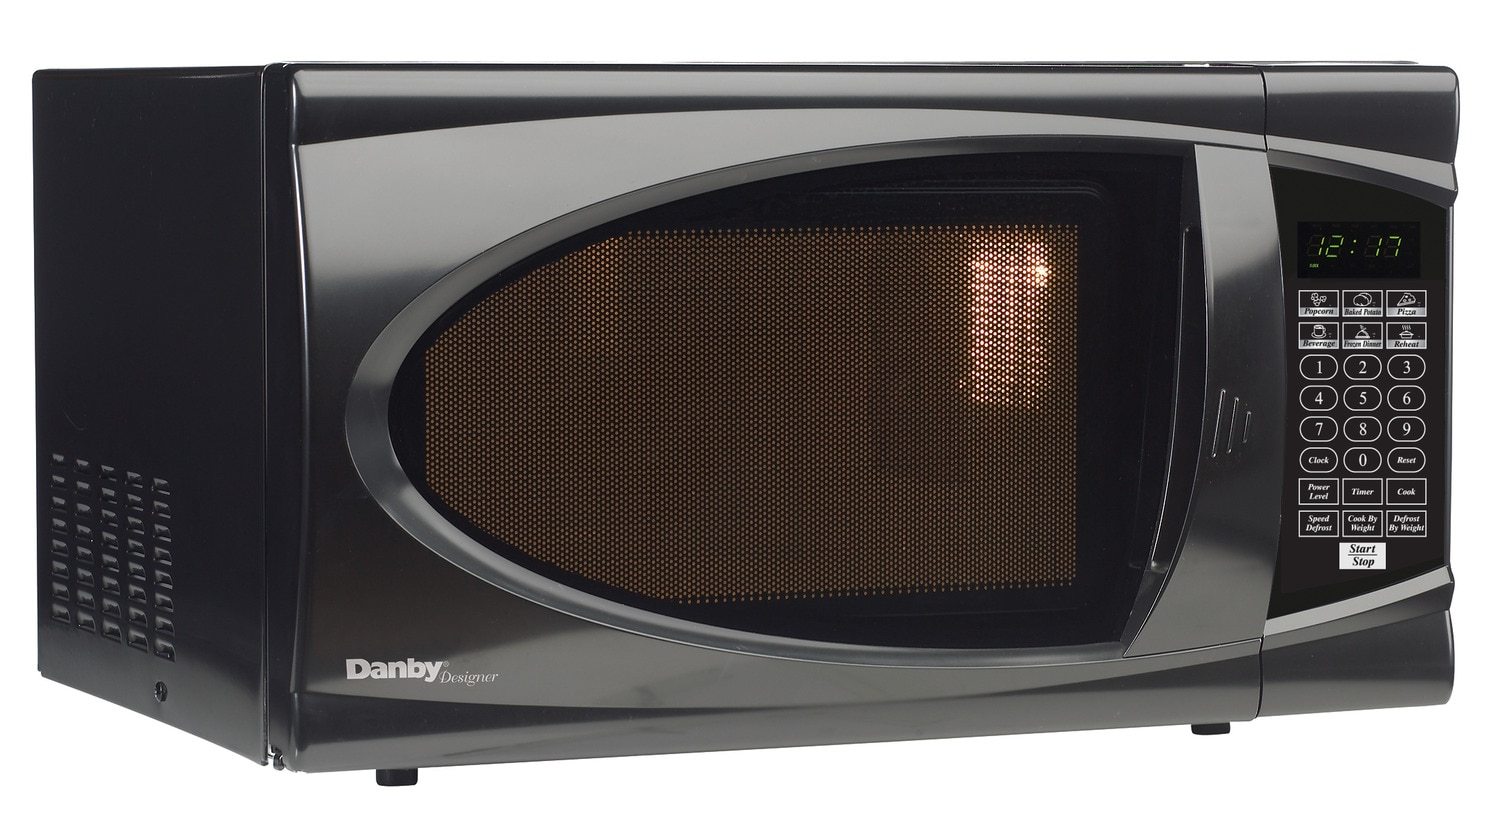 Cooking Products - Danby Black Countertop Microwave (0.7 Cu. Ft.) - DMW799BL